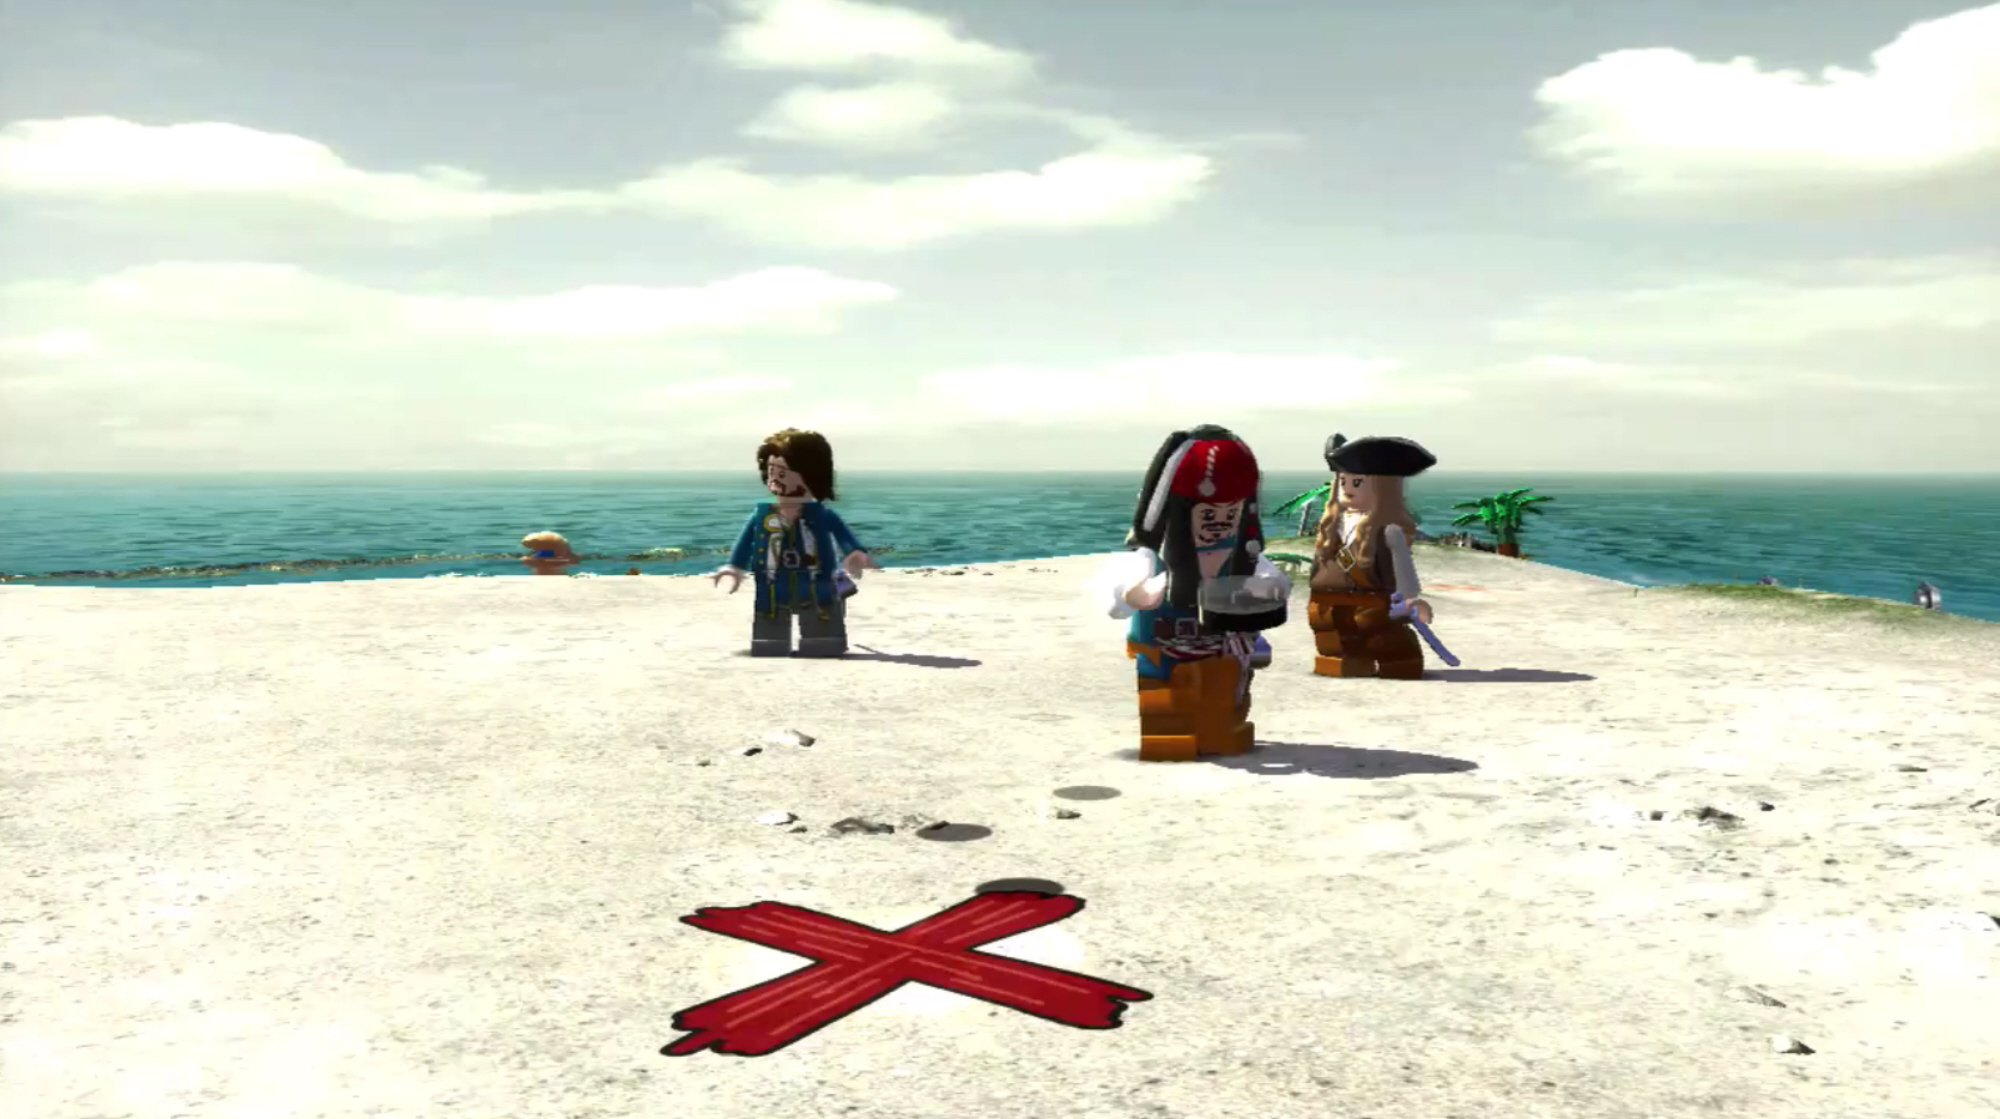 Lego pirates of the caribbean screenshot x marks the spot